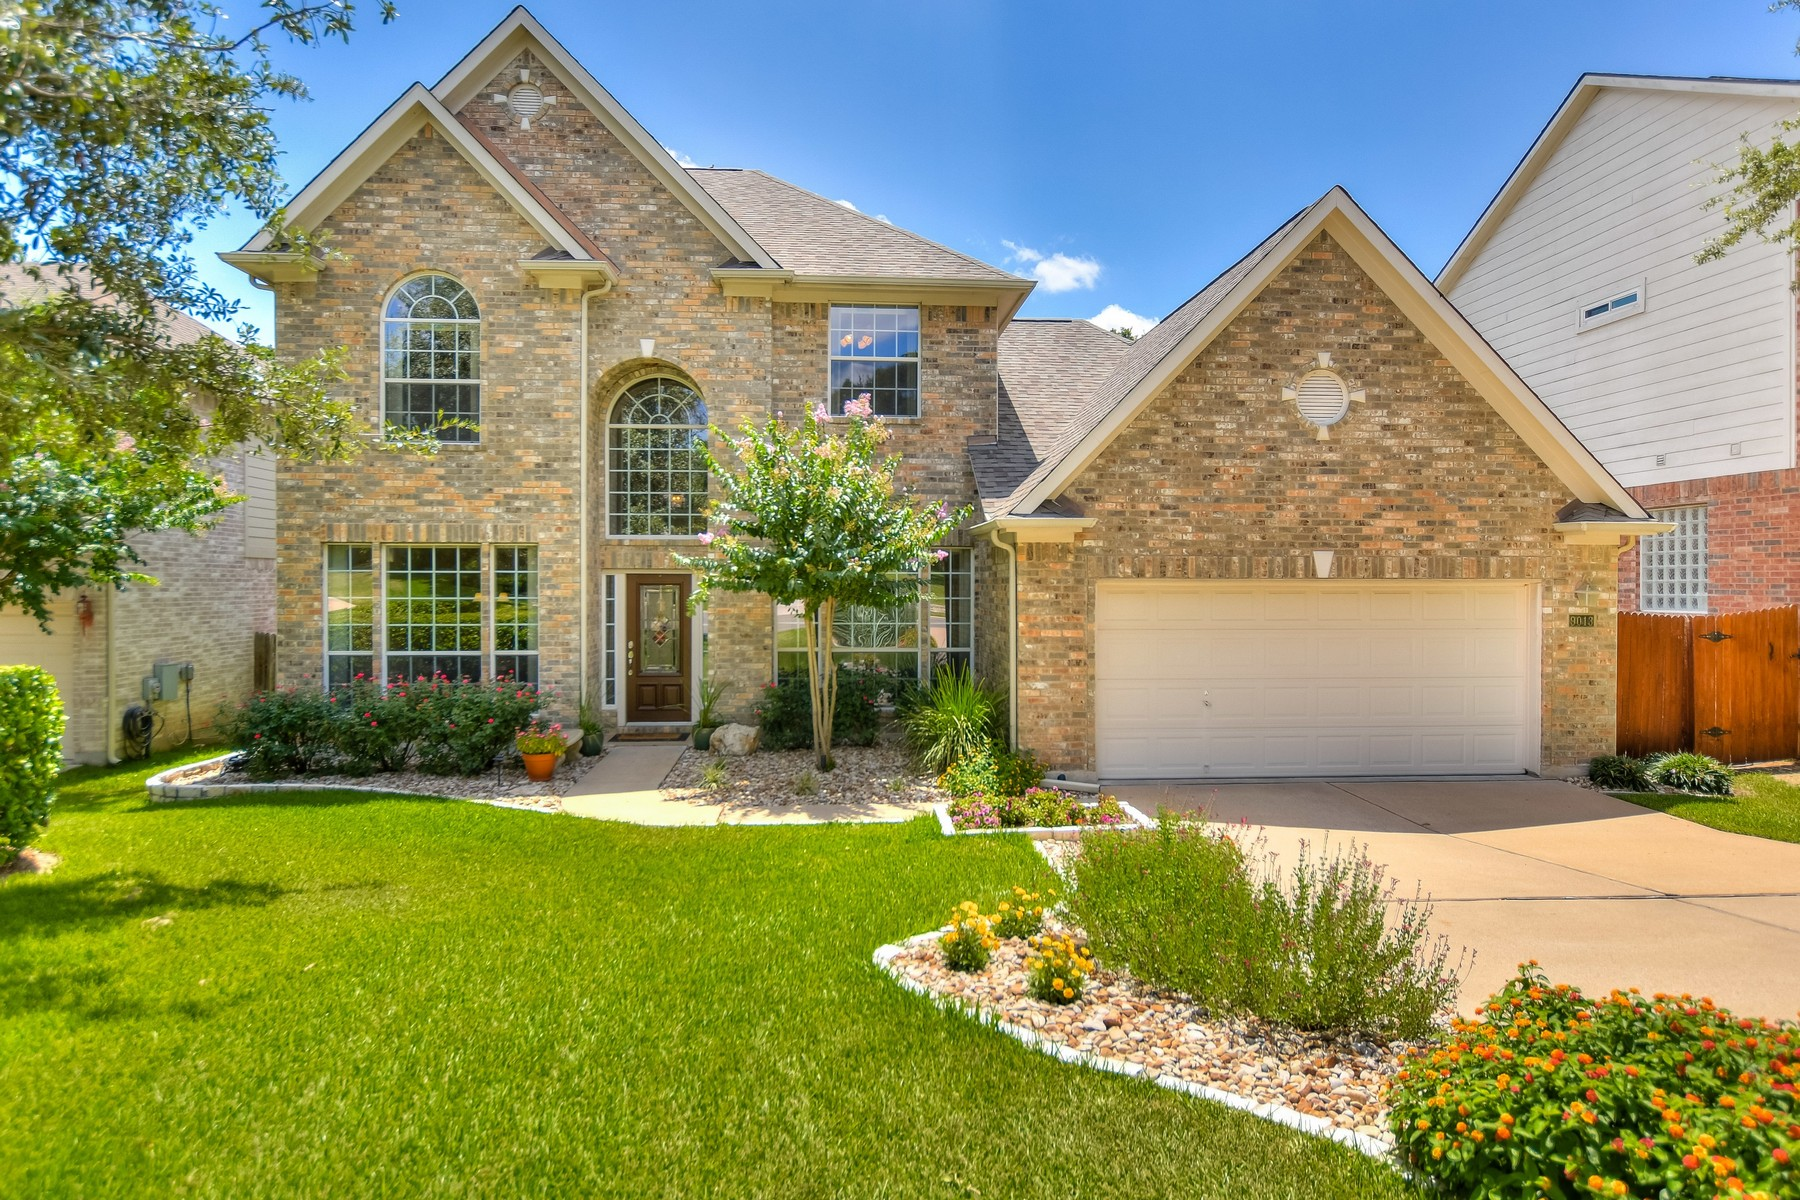 Single Family Home for Sale at Great Opportunity in SW Austin 9013 Sautelle Ln Austin, Texas 78749 United States